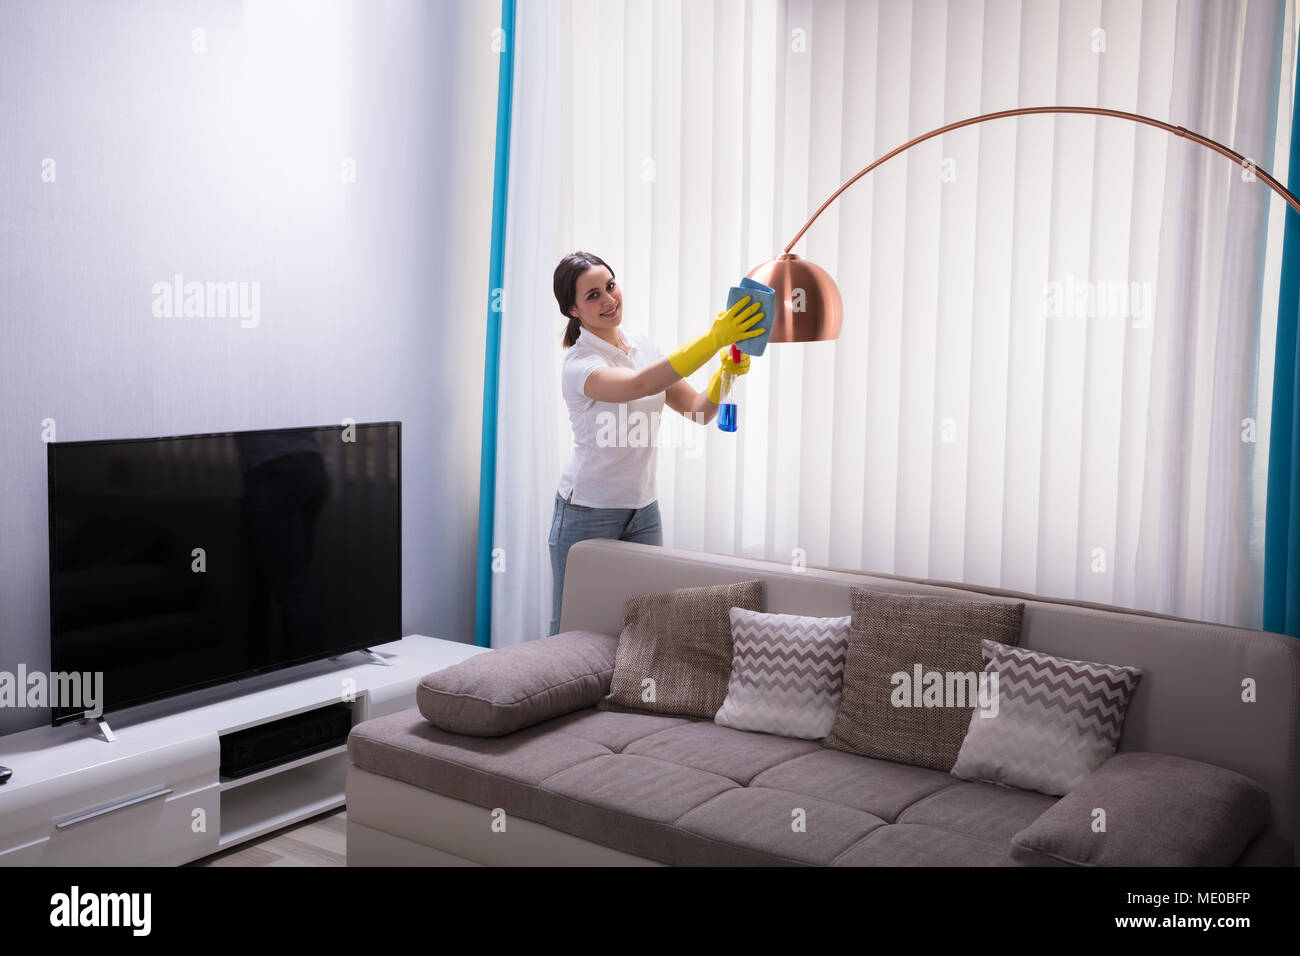 Young Female Janitor Cleaning Electric Light With Spray At Home - Stock Image